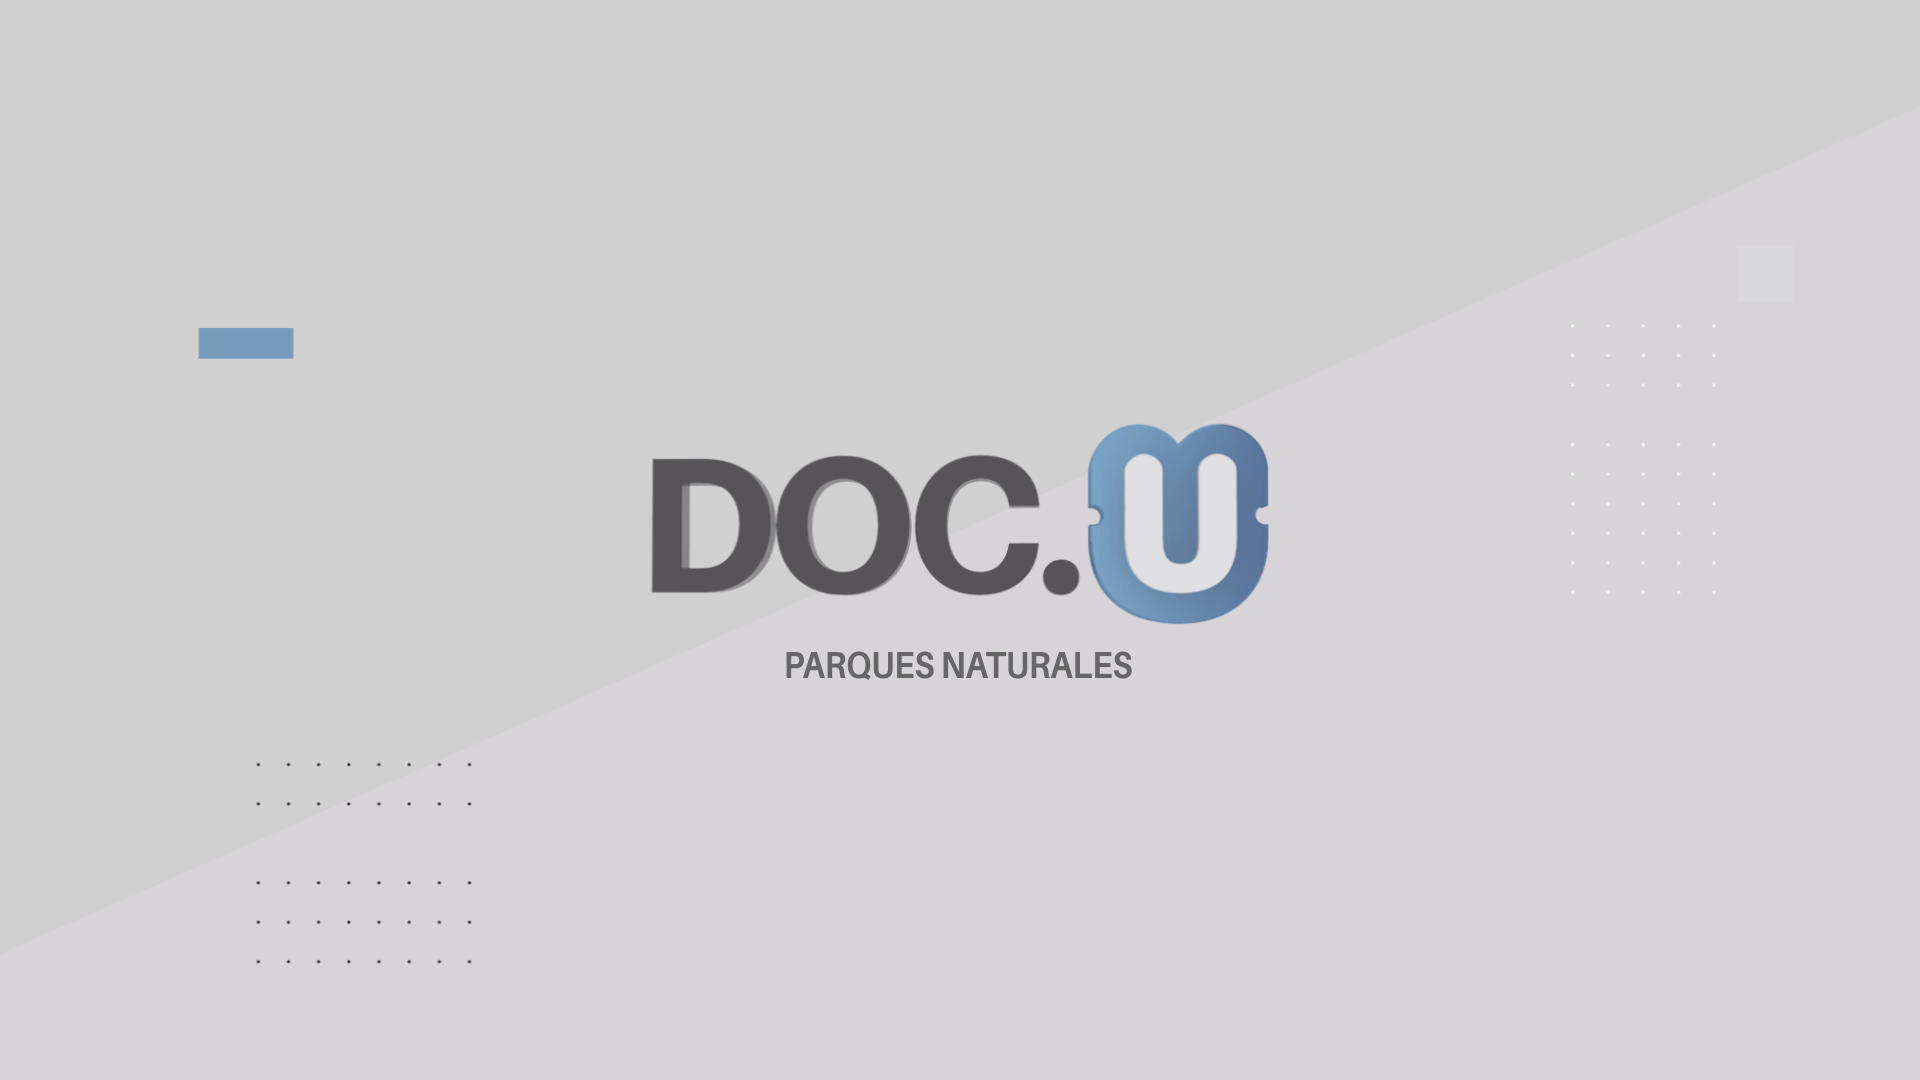 DOC.U Parques Naturales